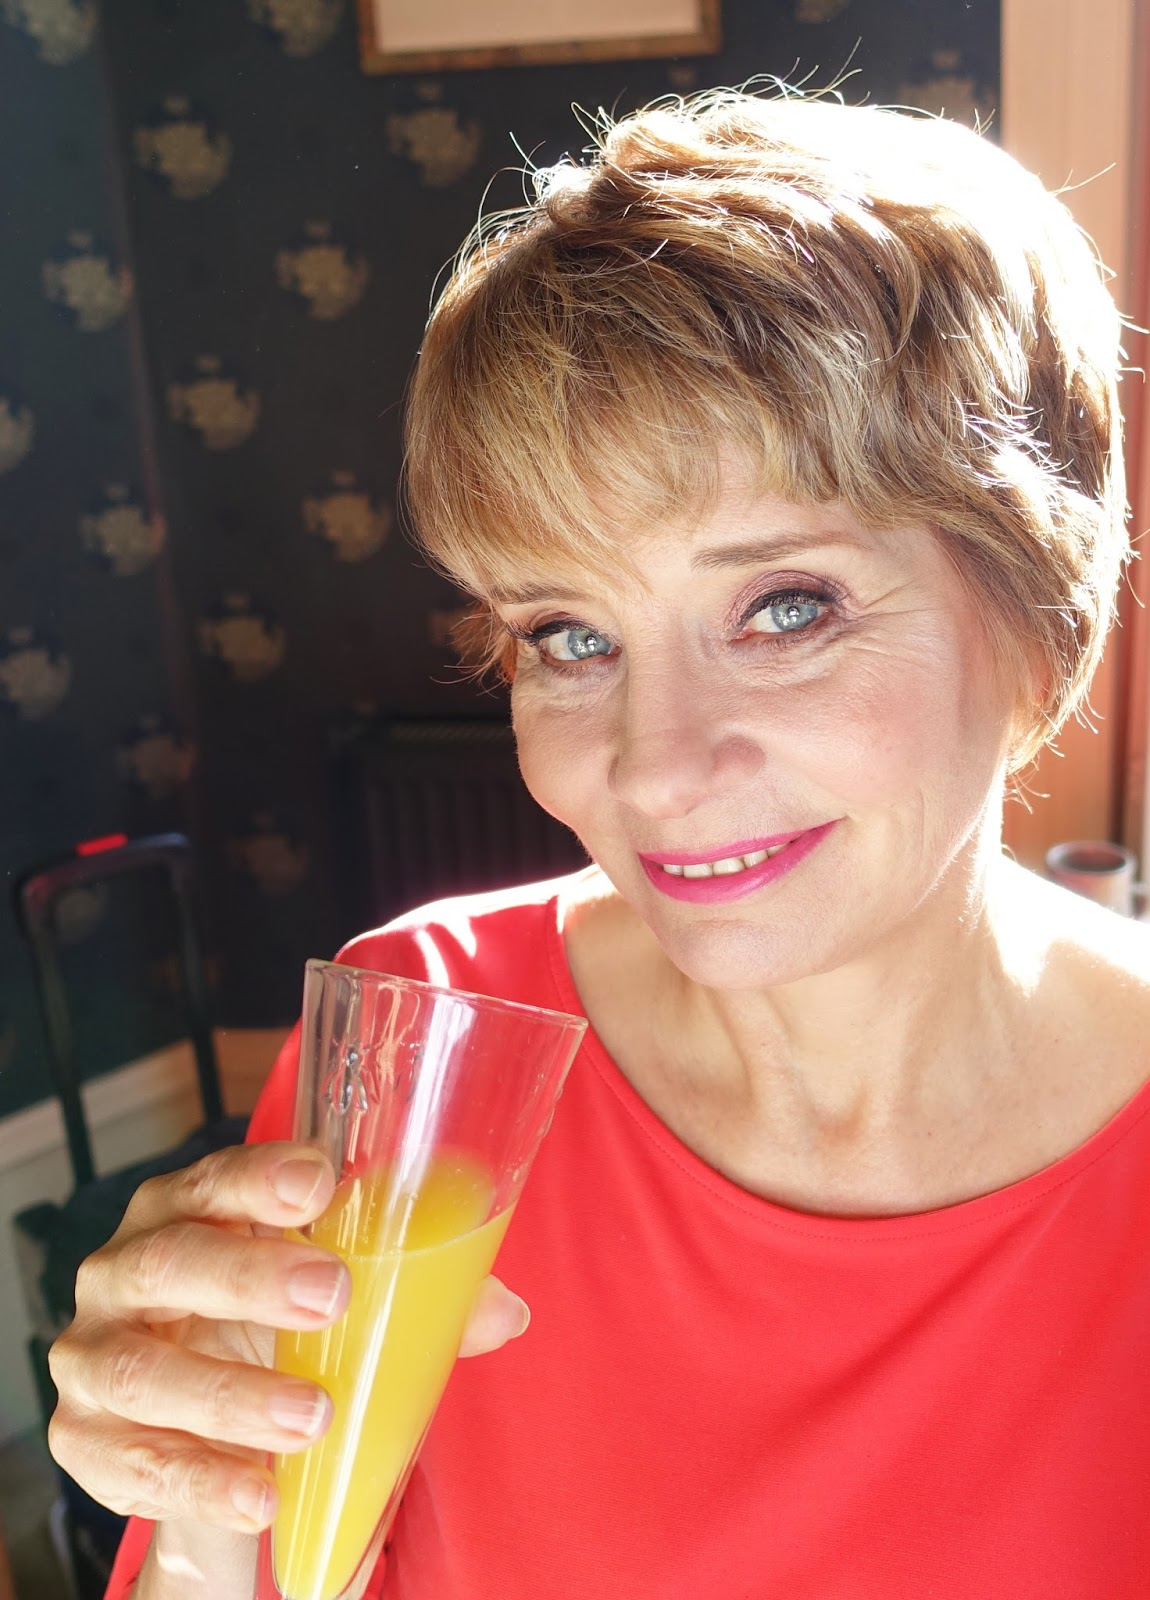 Image showing a woman sipping a glass of Bucks Fizz